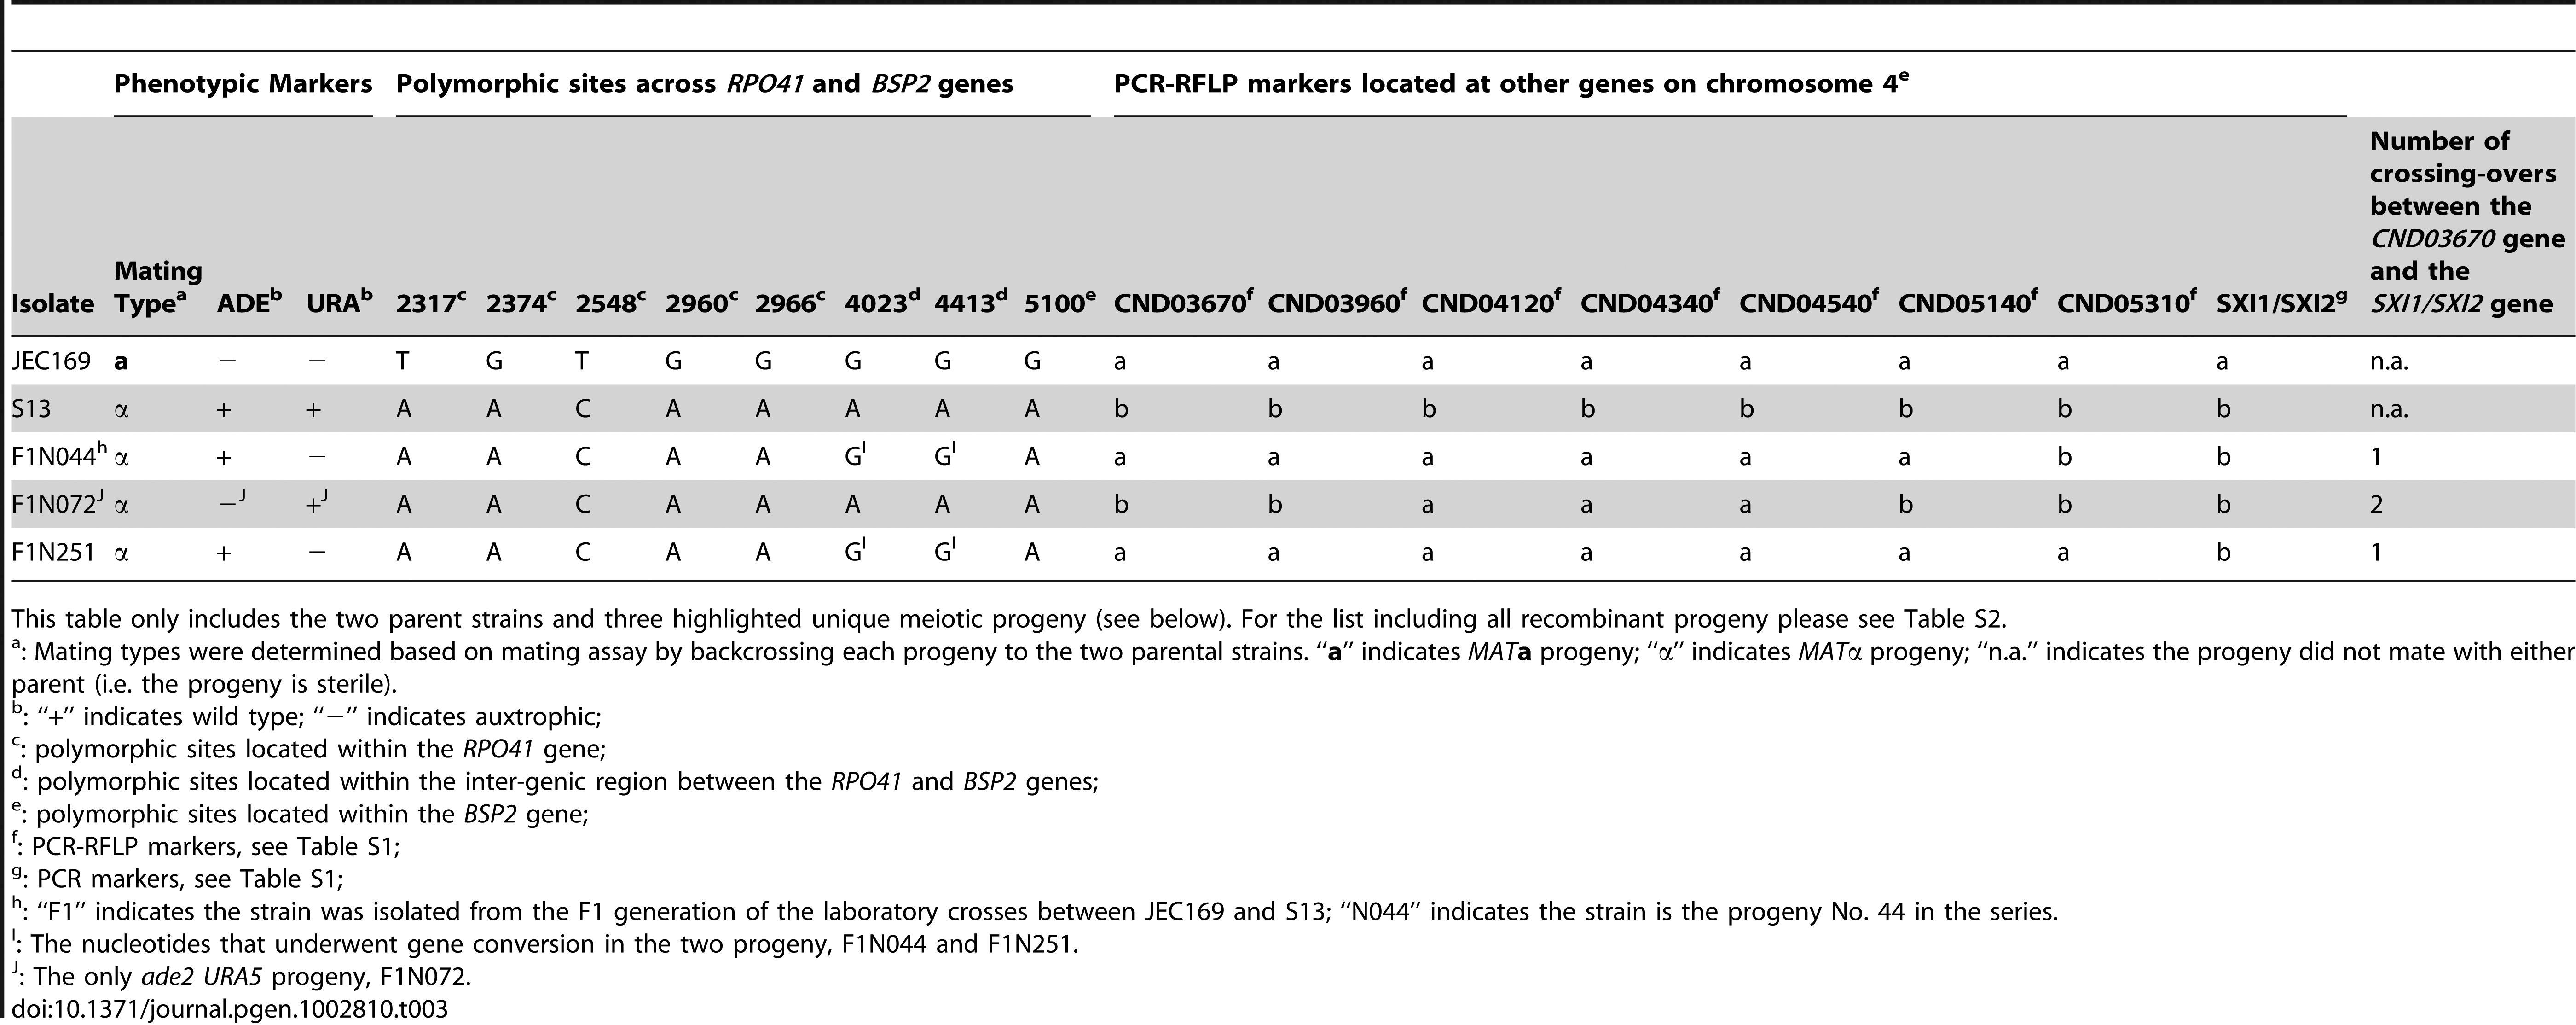 Genotypes of the two parental strains and representative recombinant progeny at the 18 markers screened in this study.